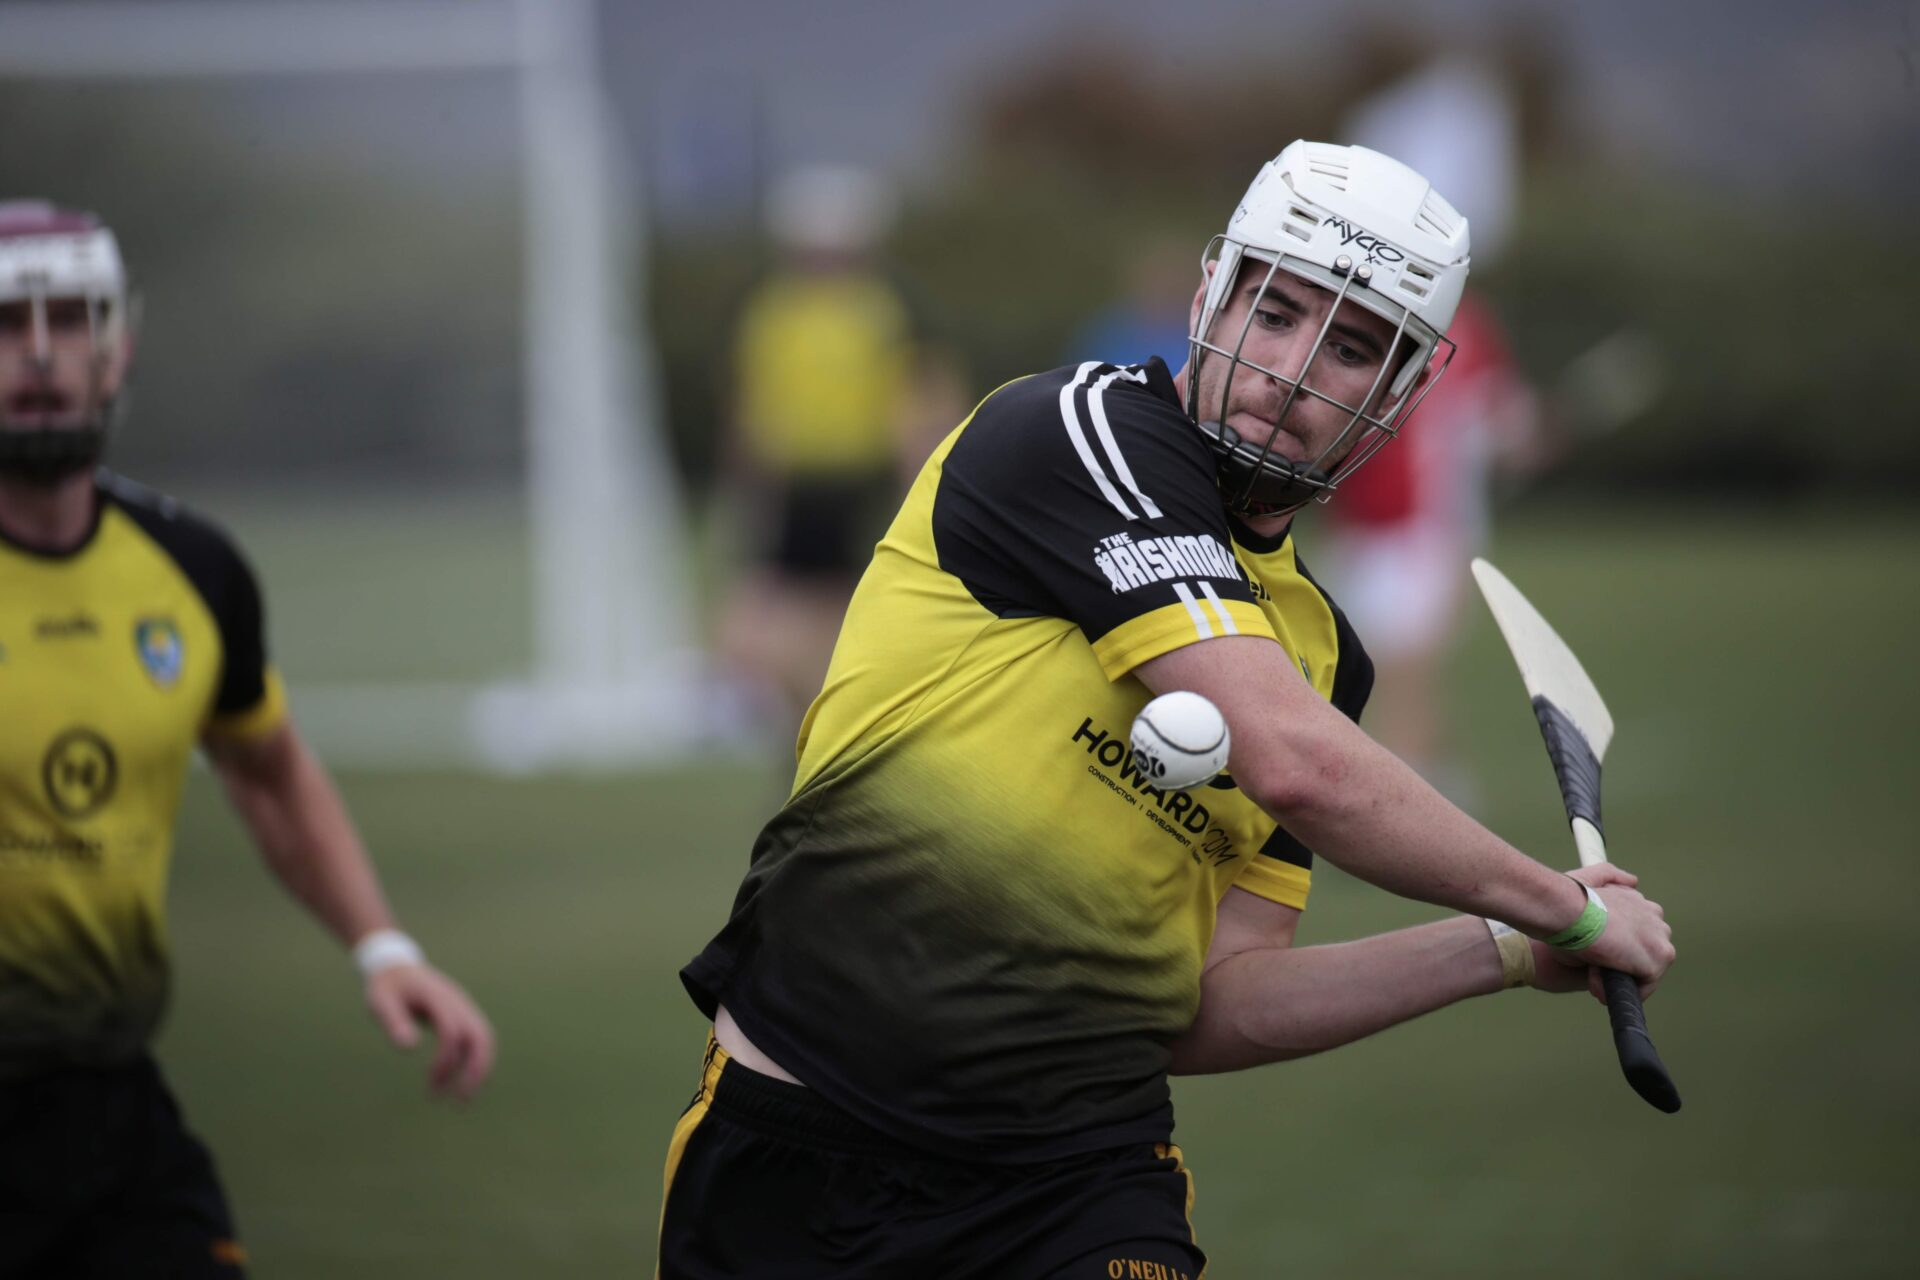 California's OC Wild Geese hurling player striking a sliotar at the West Coast Sevens tournament in 2019.